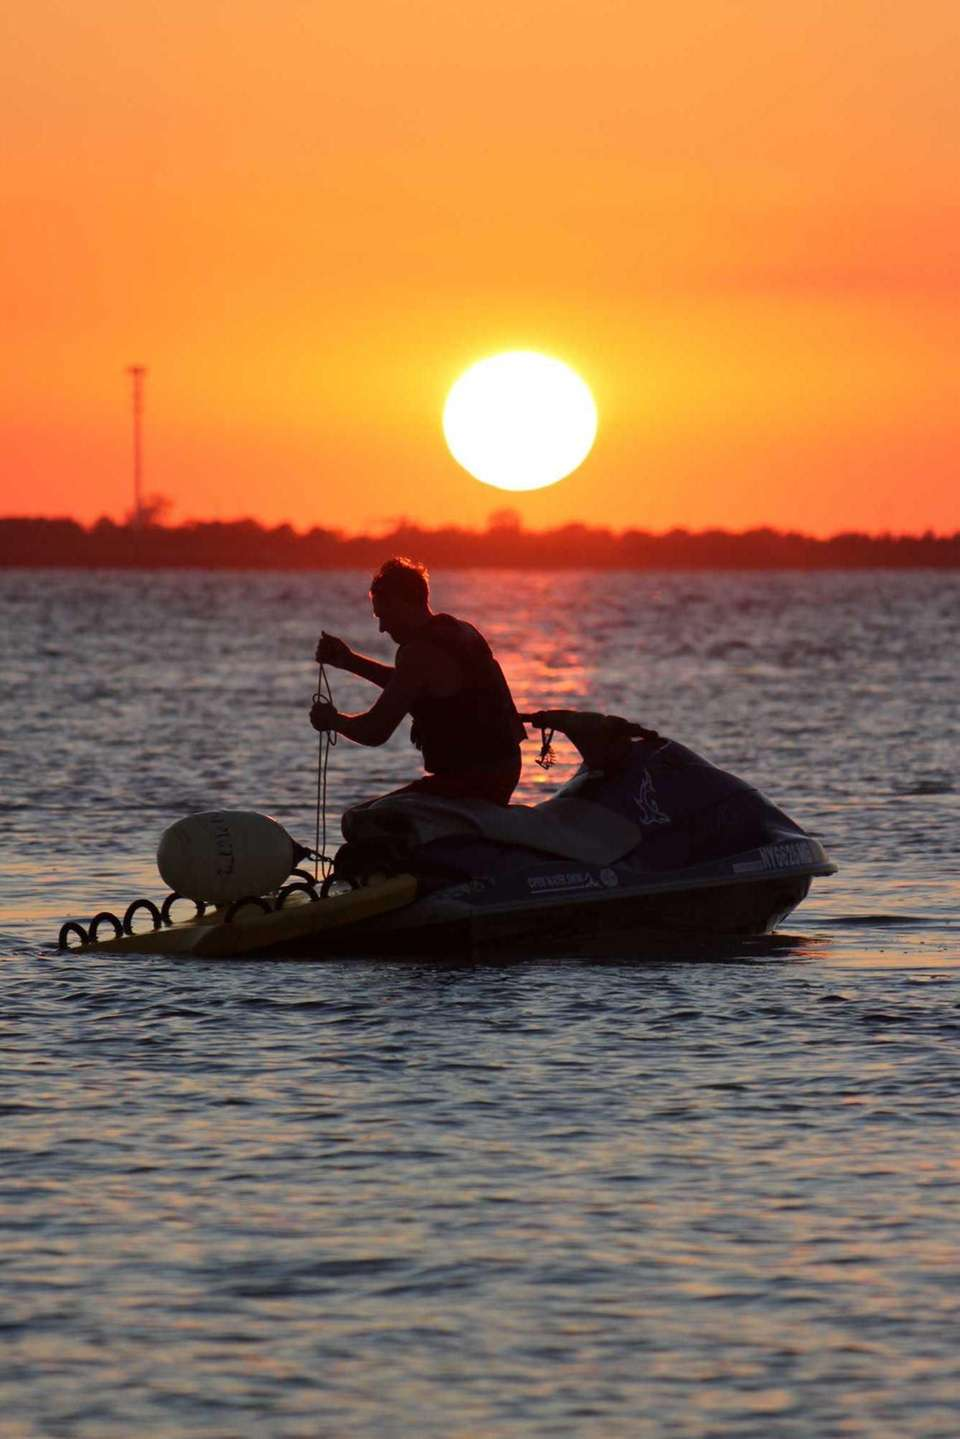 Jet ski in Great South Bay at sunset